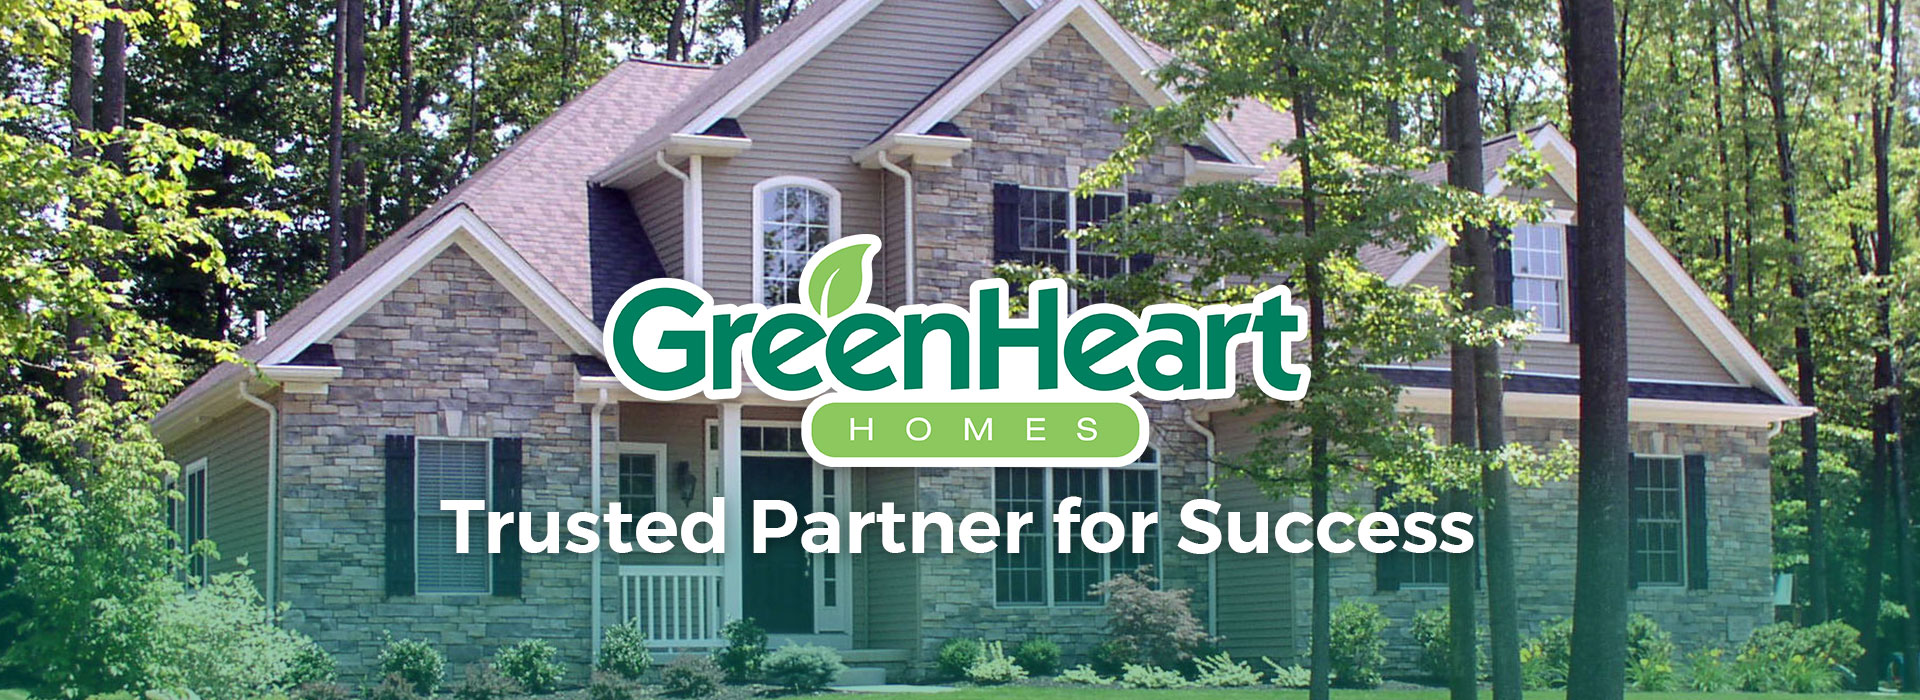 GreenHeart Homes - Trusted Partner for Success